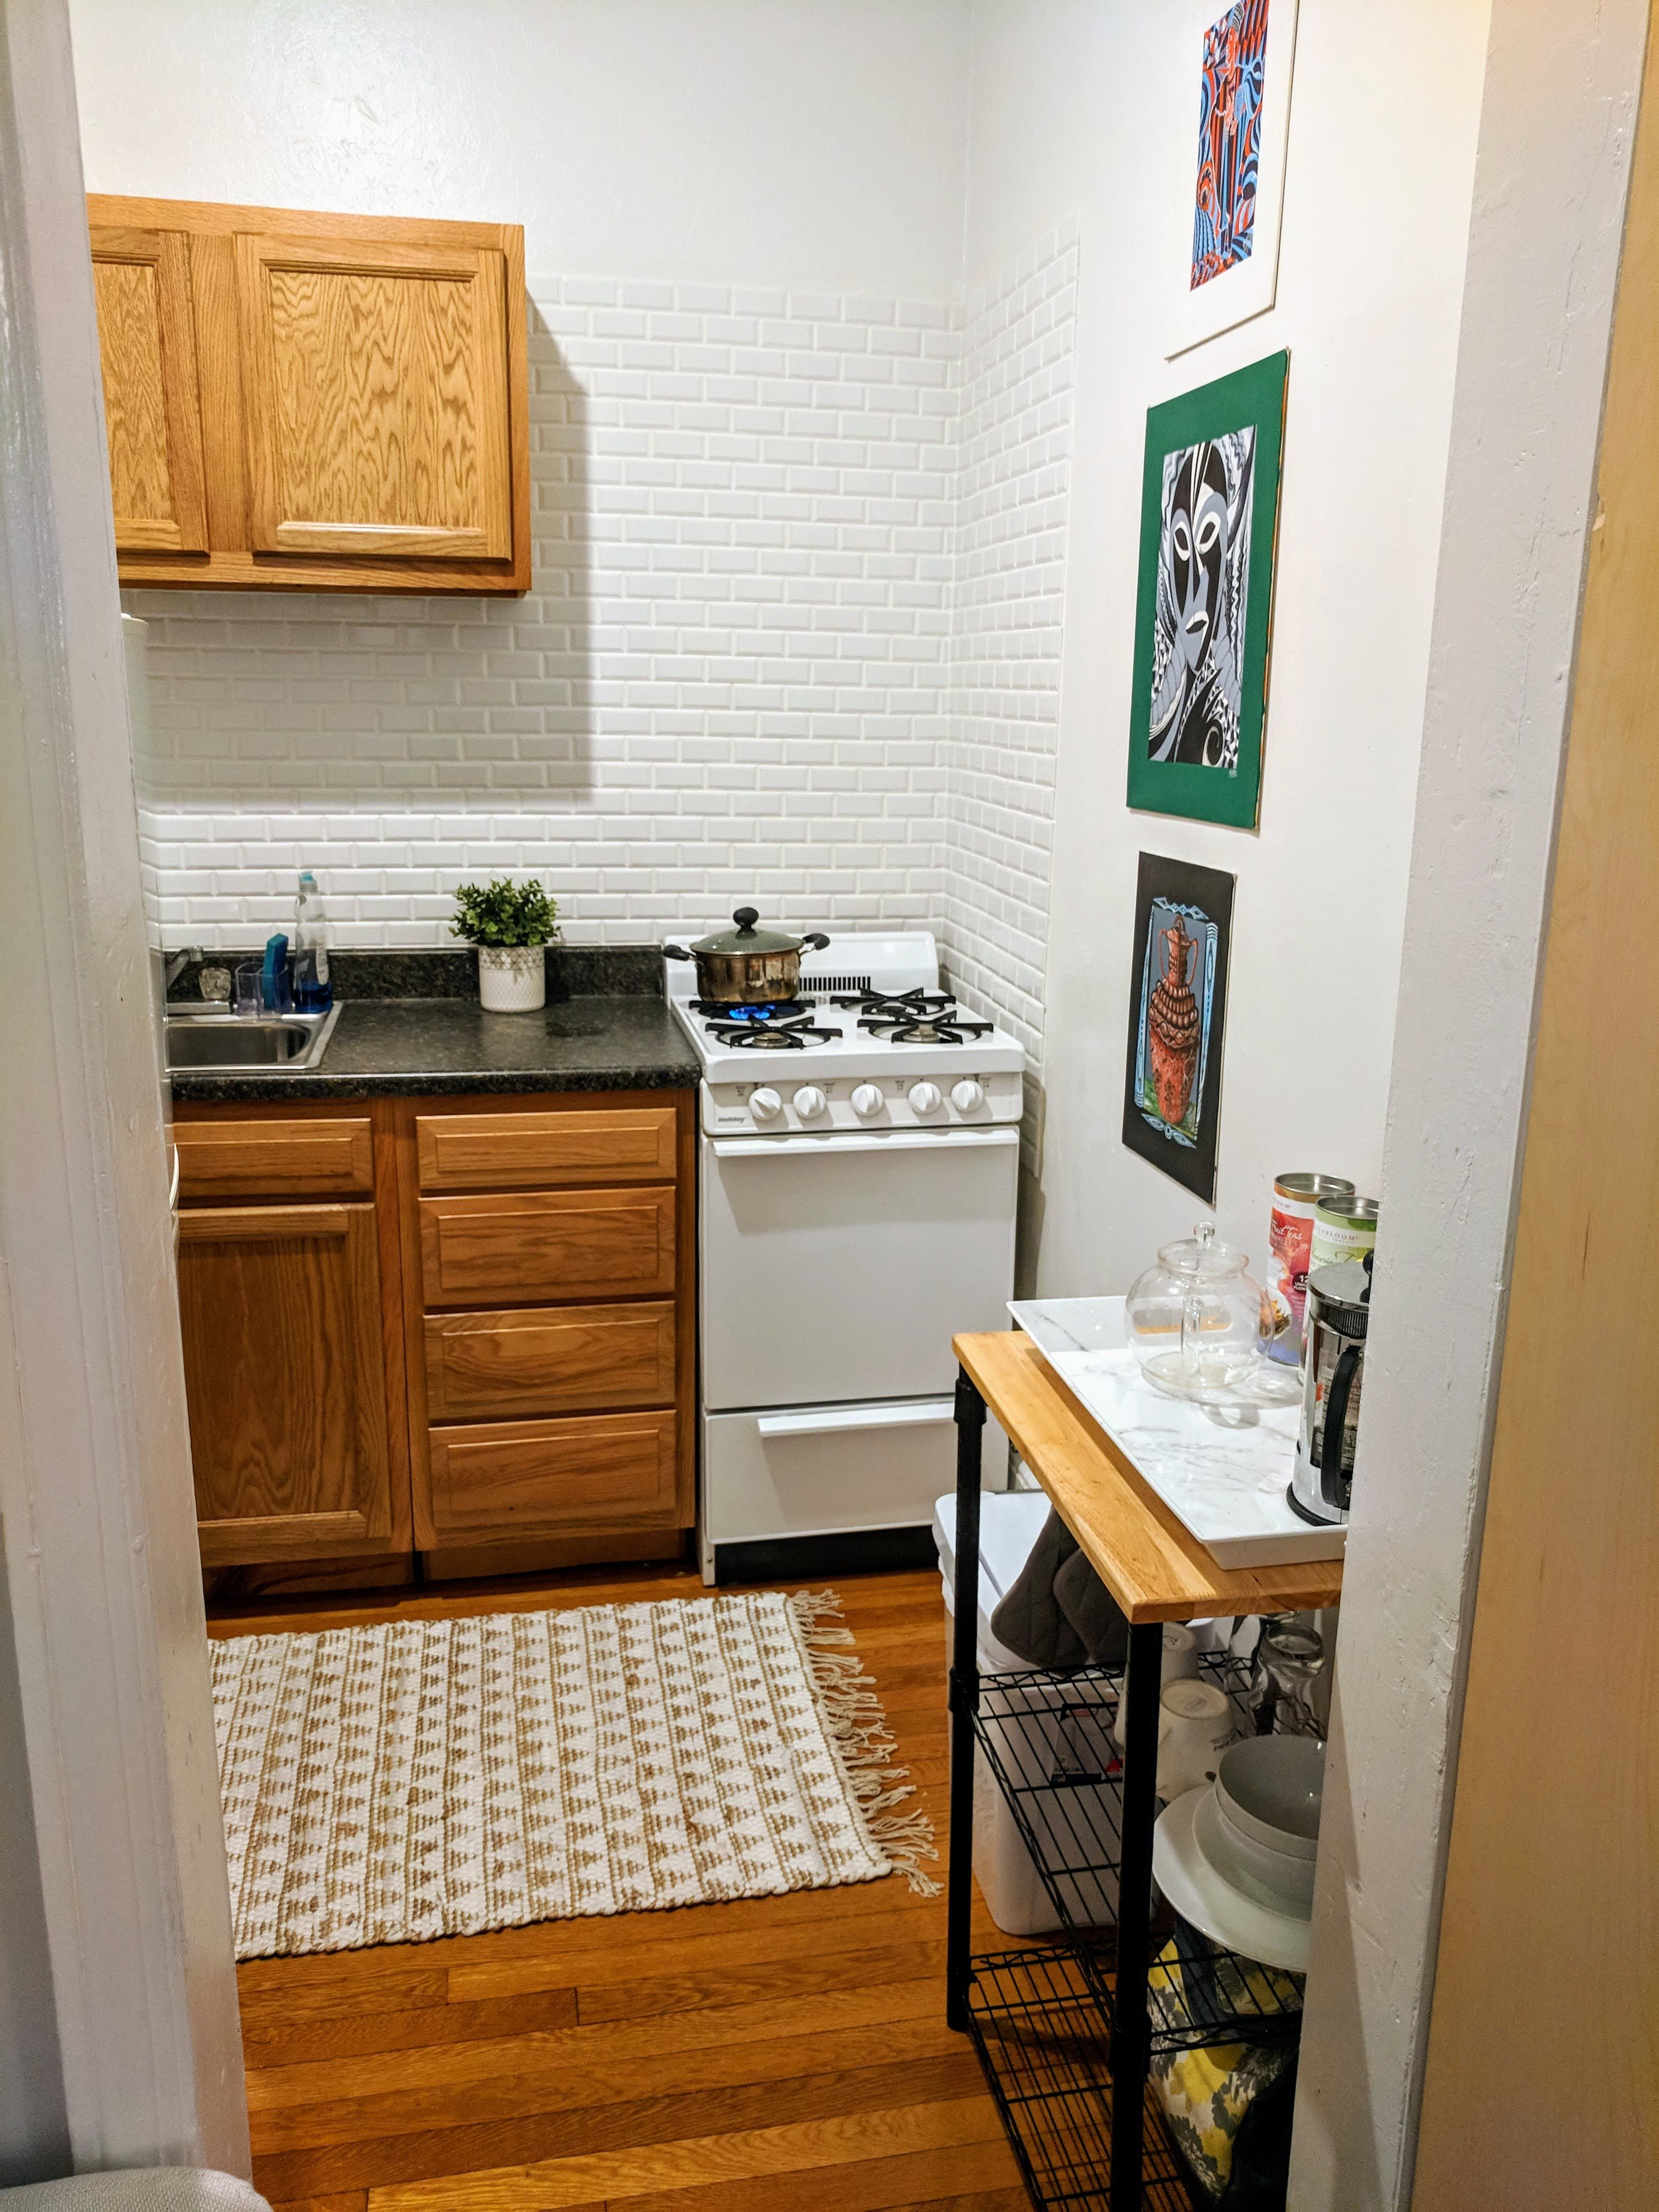 A Teeny Studio Apartment Is Well-Designed and Incredibly ...